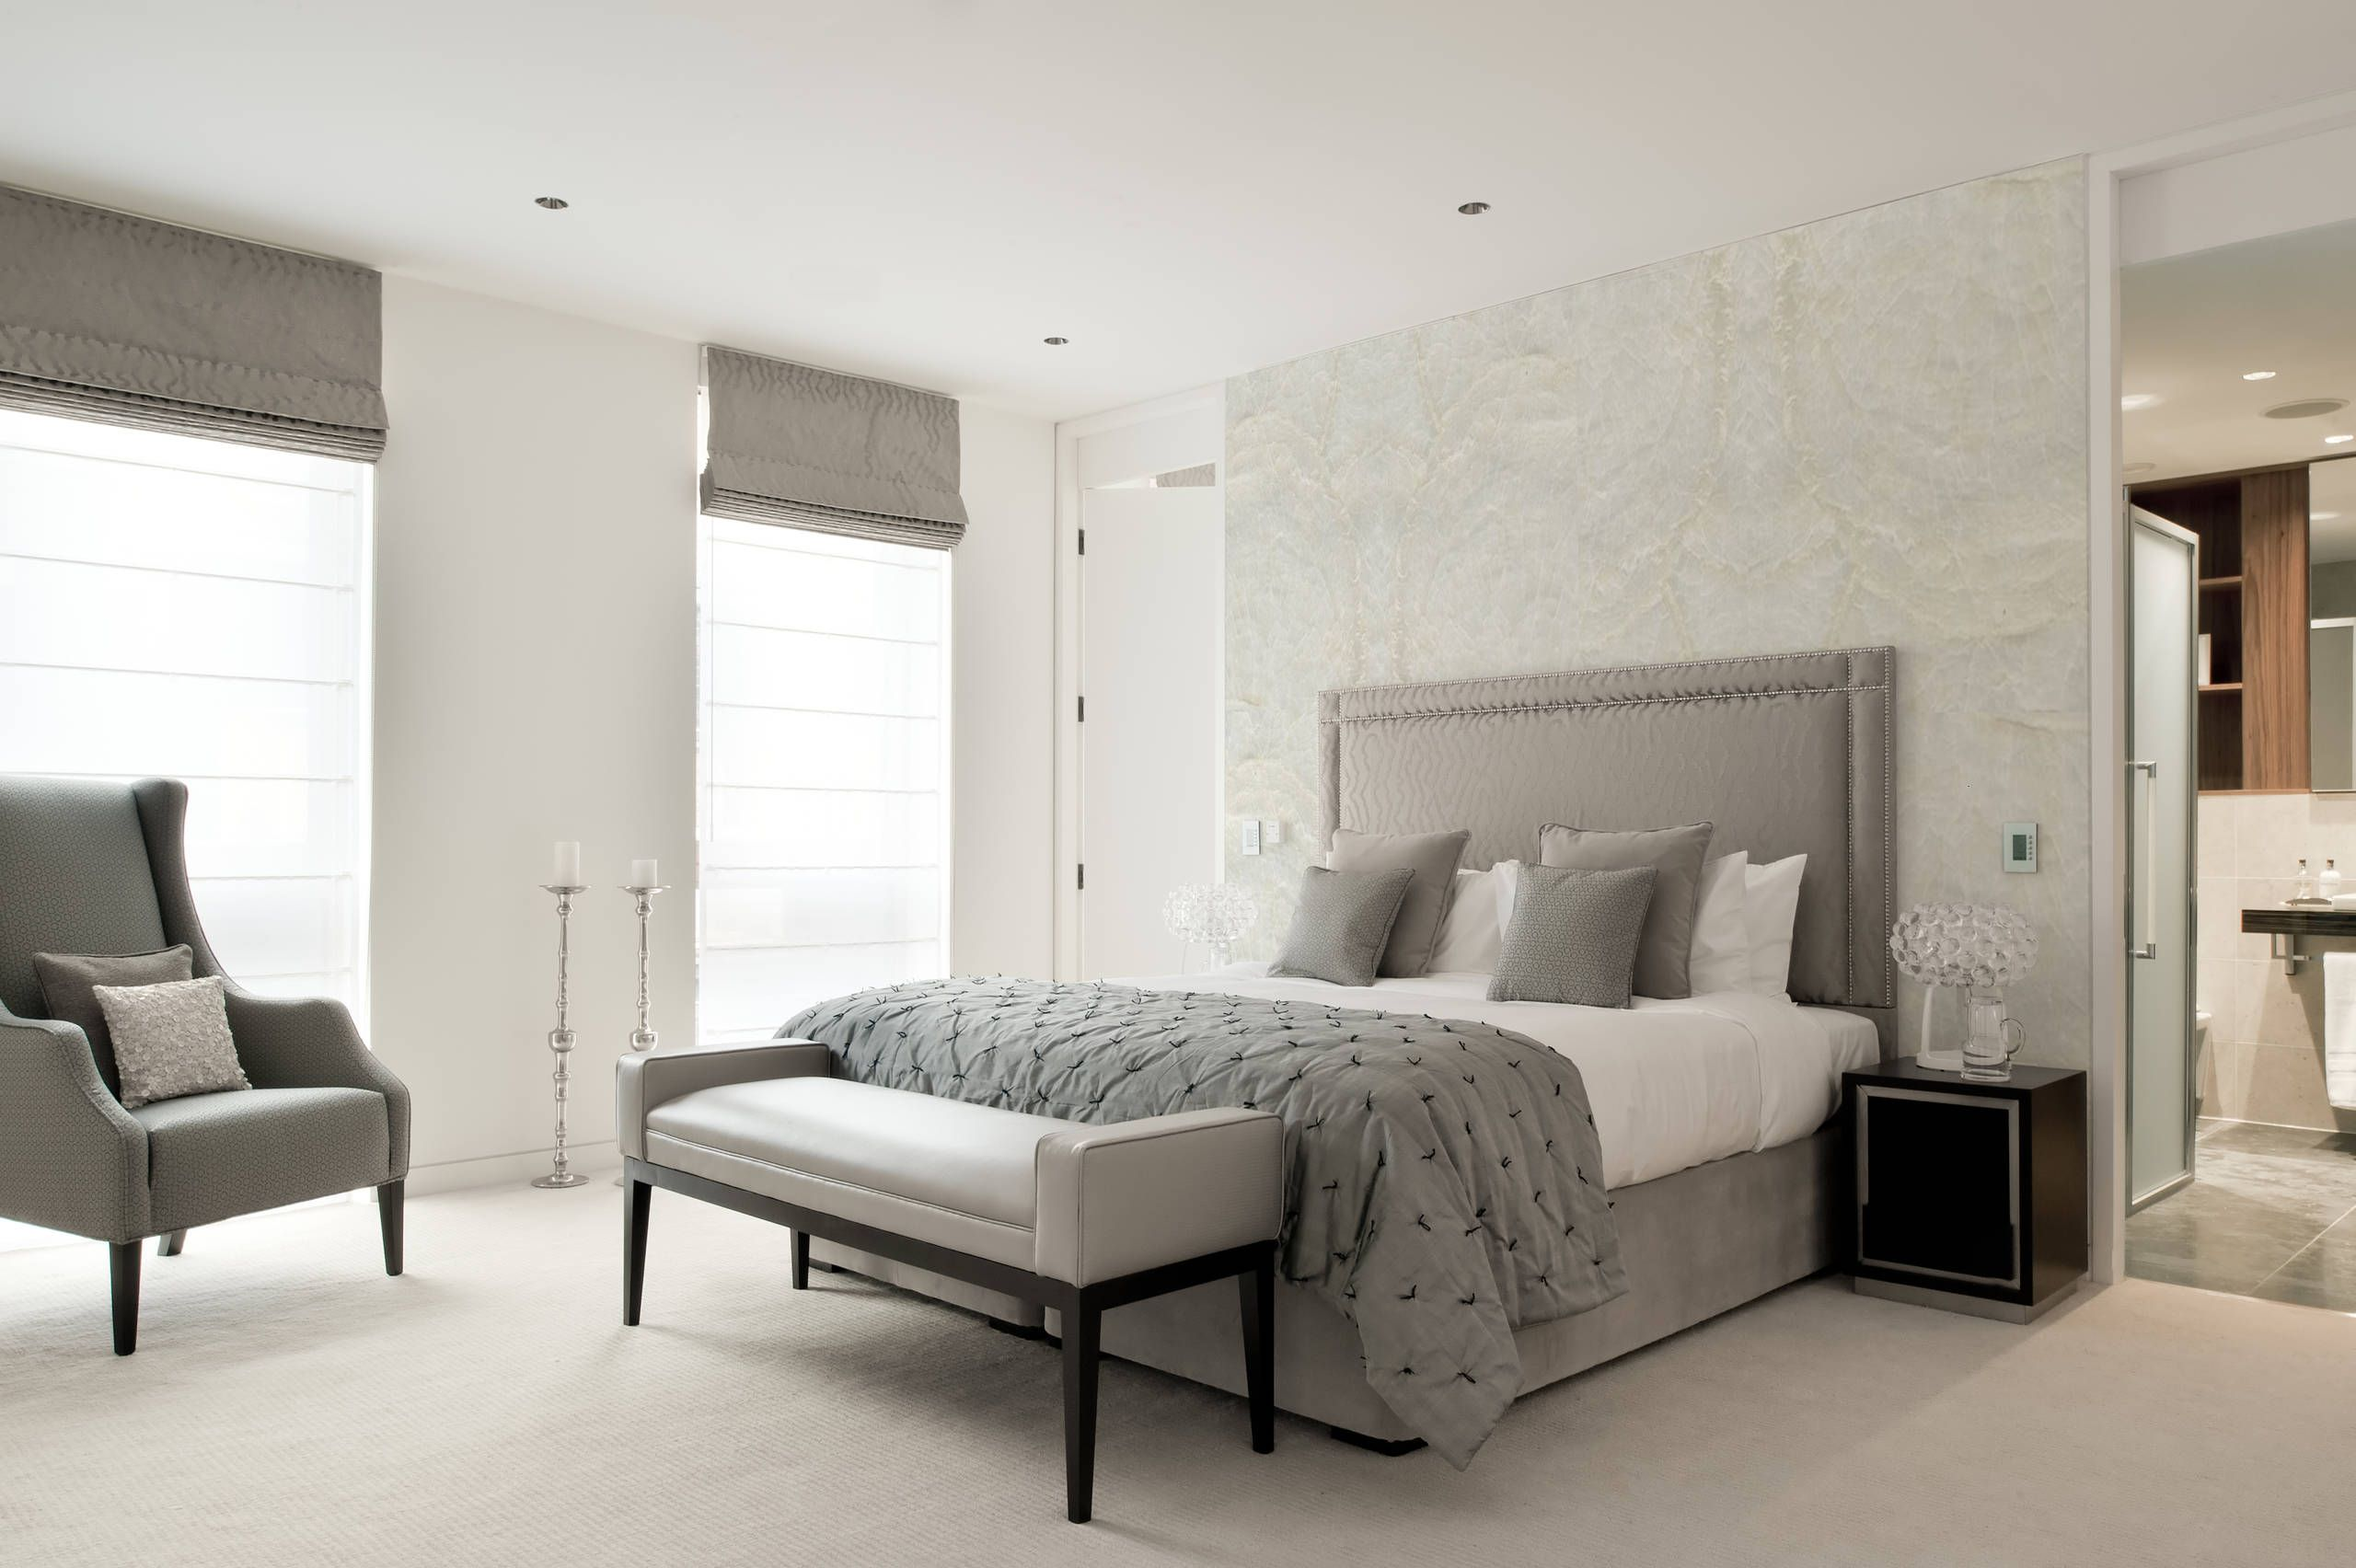 Awesome Show Home Bedroom Ideas Image Collection - Home Decorating ...